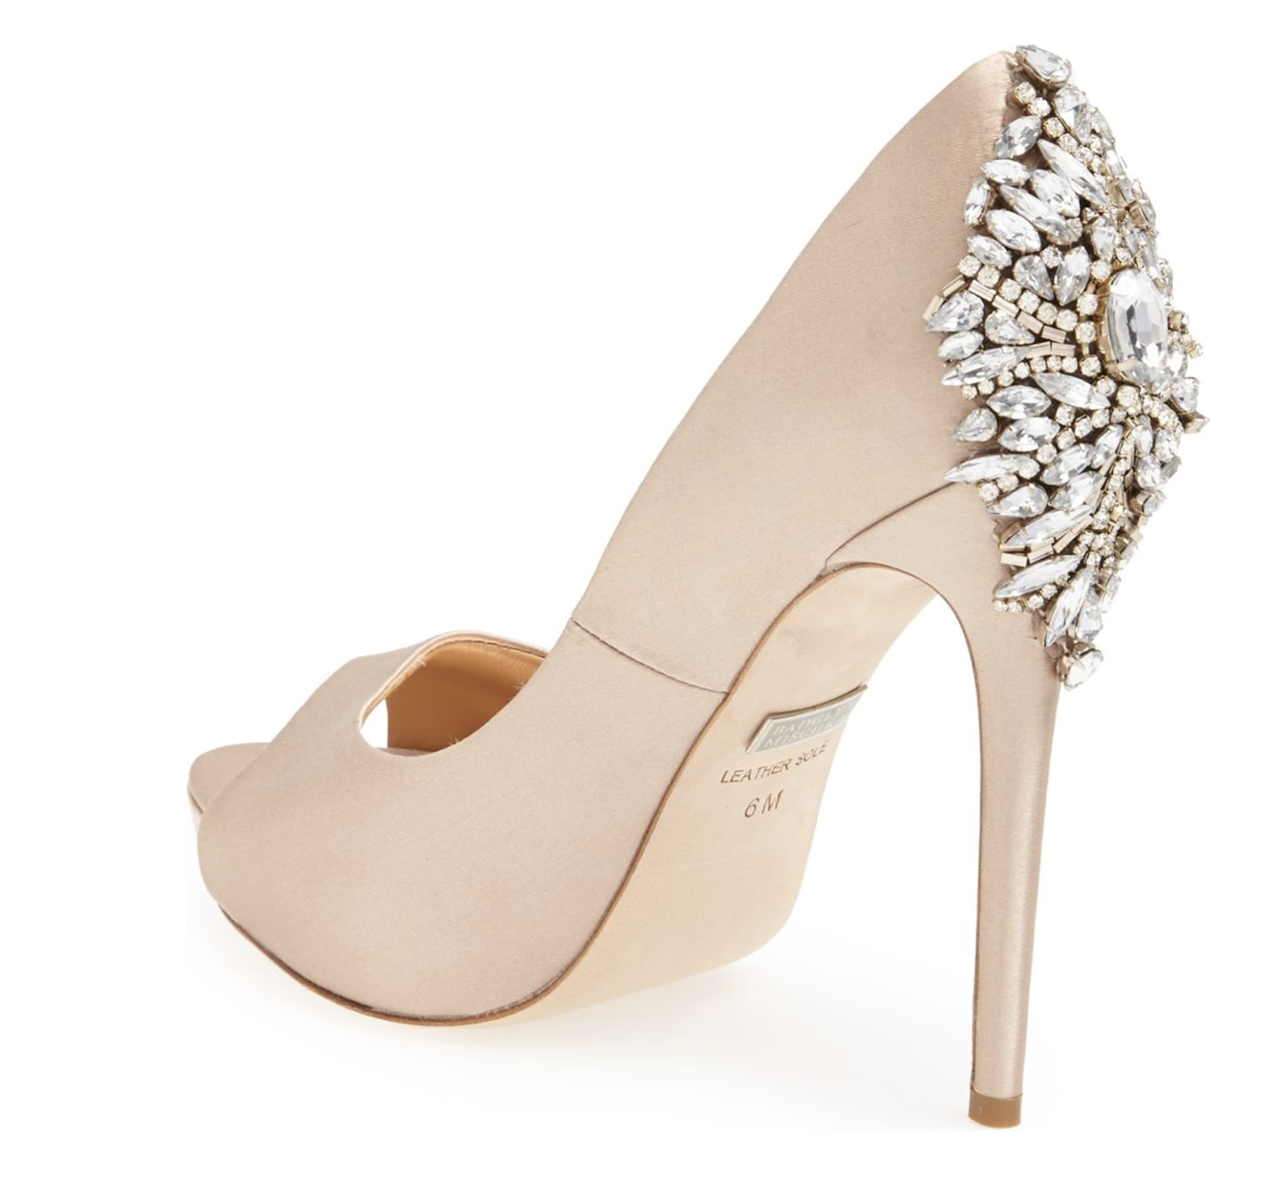 Glam Wedding Heels - Badgley Mischka 'Kiara' Crystal Back Open Toe Pump